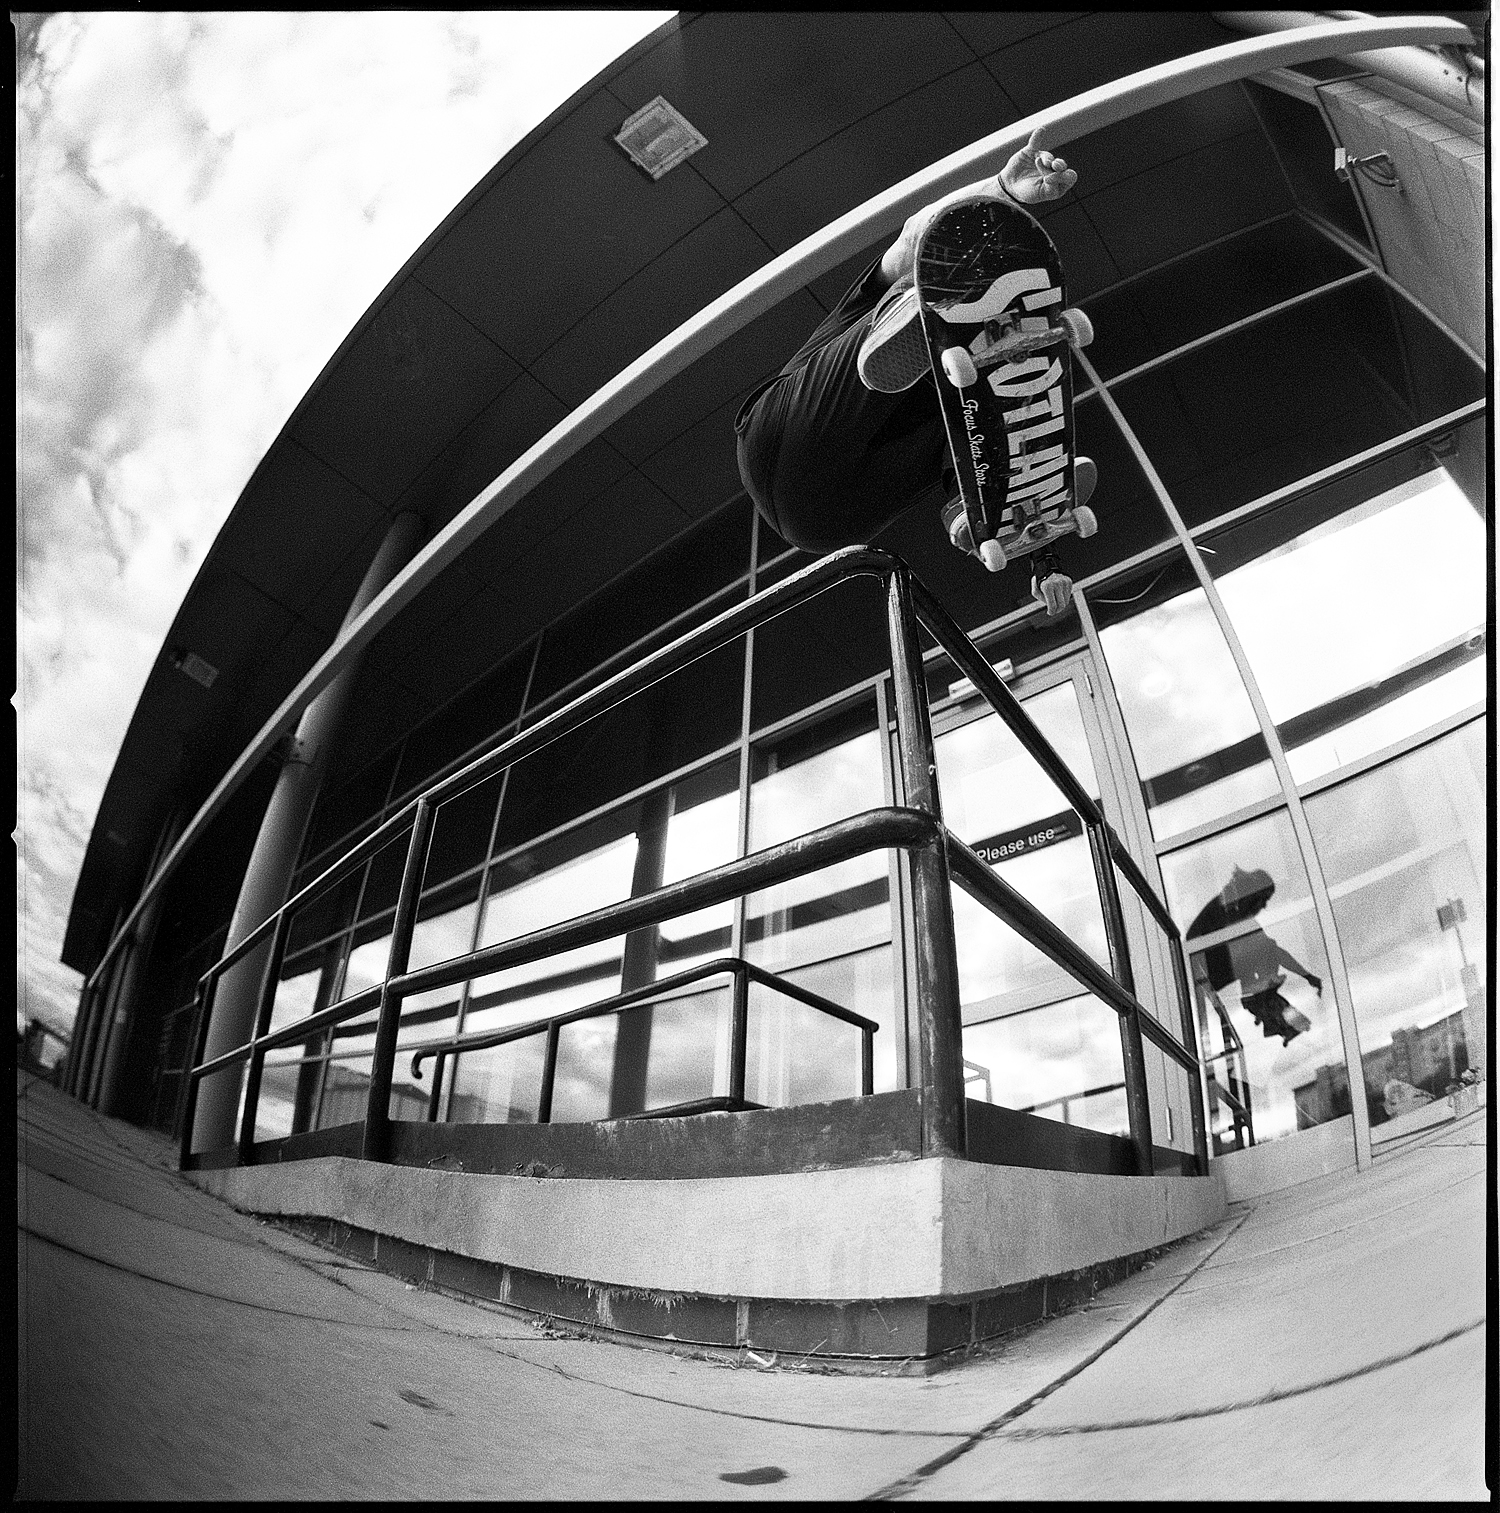 FS 180 - Shot on the Hasselblad 2003FCW with Ilford Delta 3200 film  Photo: Graham Tait